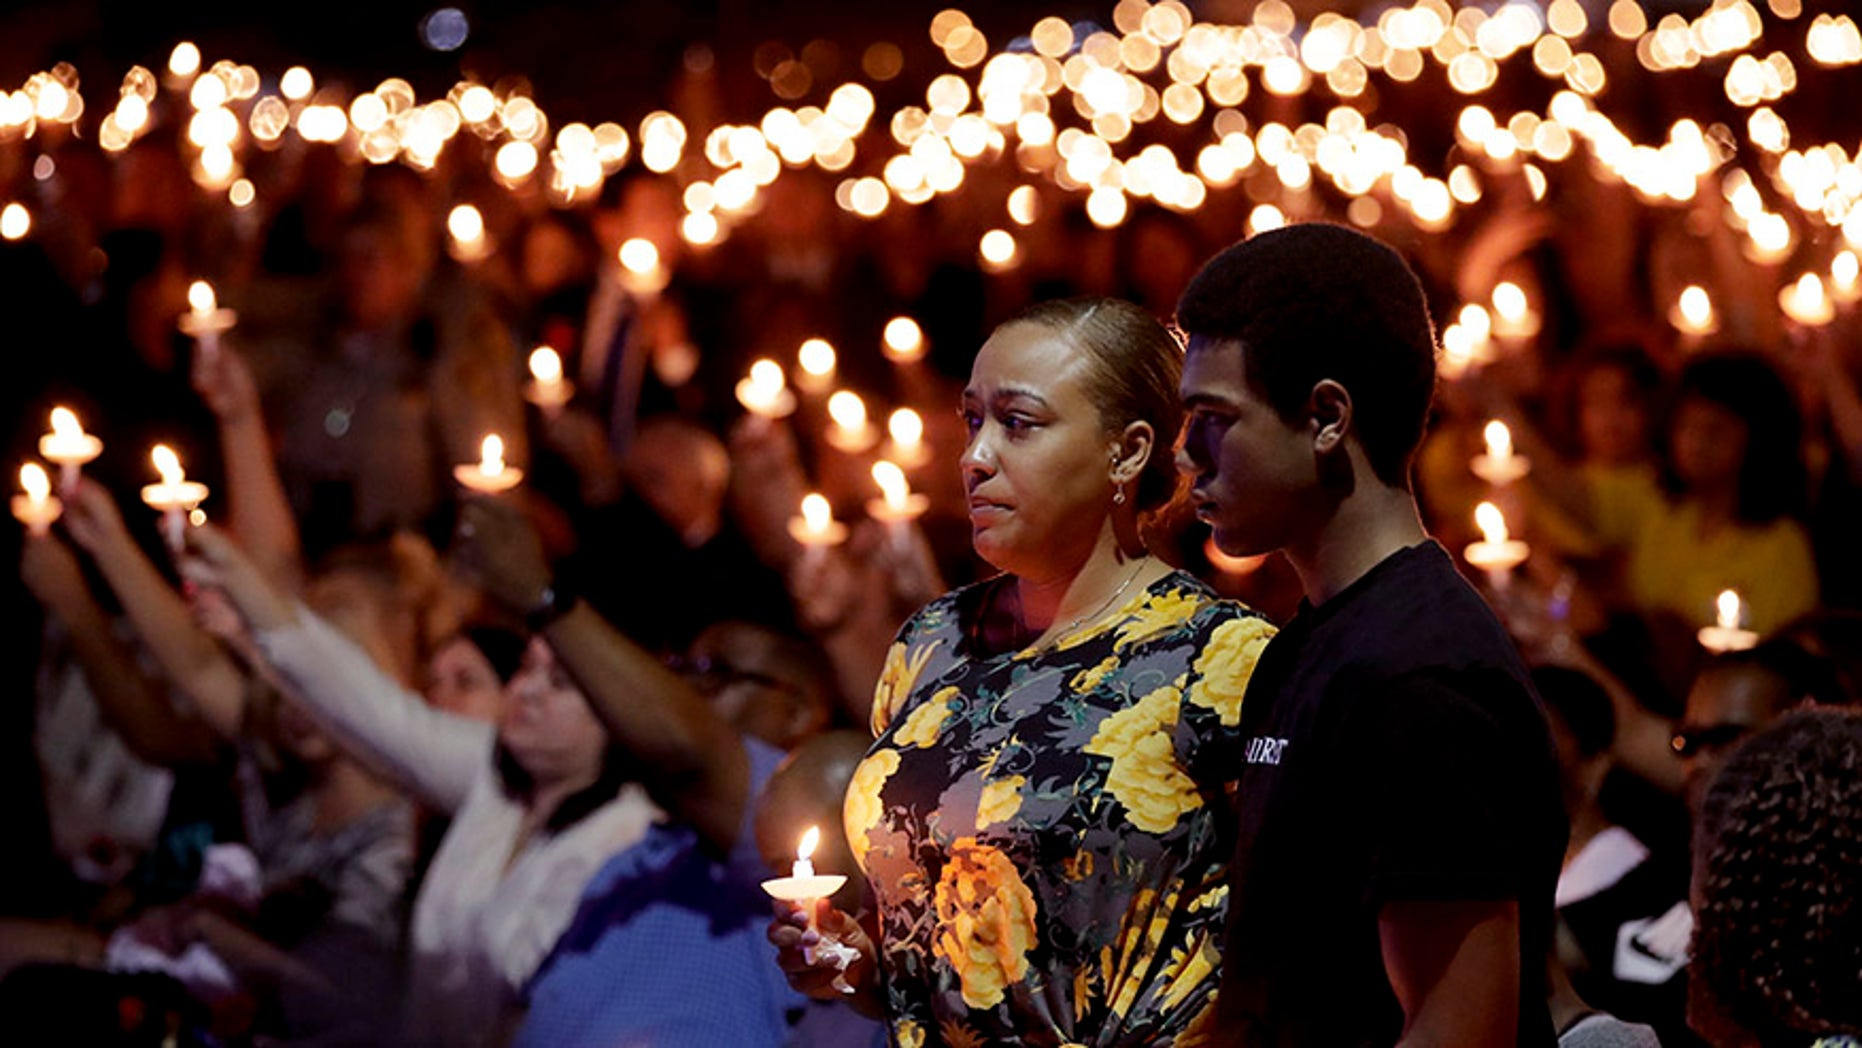 Oct. 5, 2017: Veronica Hartfield, stands with her son, Ayzayah Hartfield during a candlelight vigil for her husband, Las Vegas police officer Charleston Hartfield.